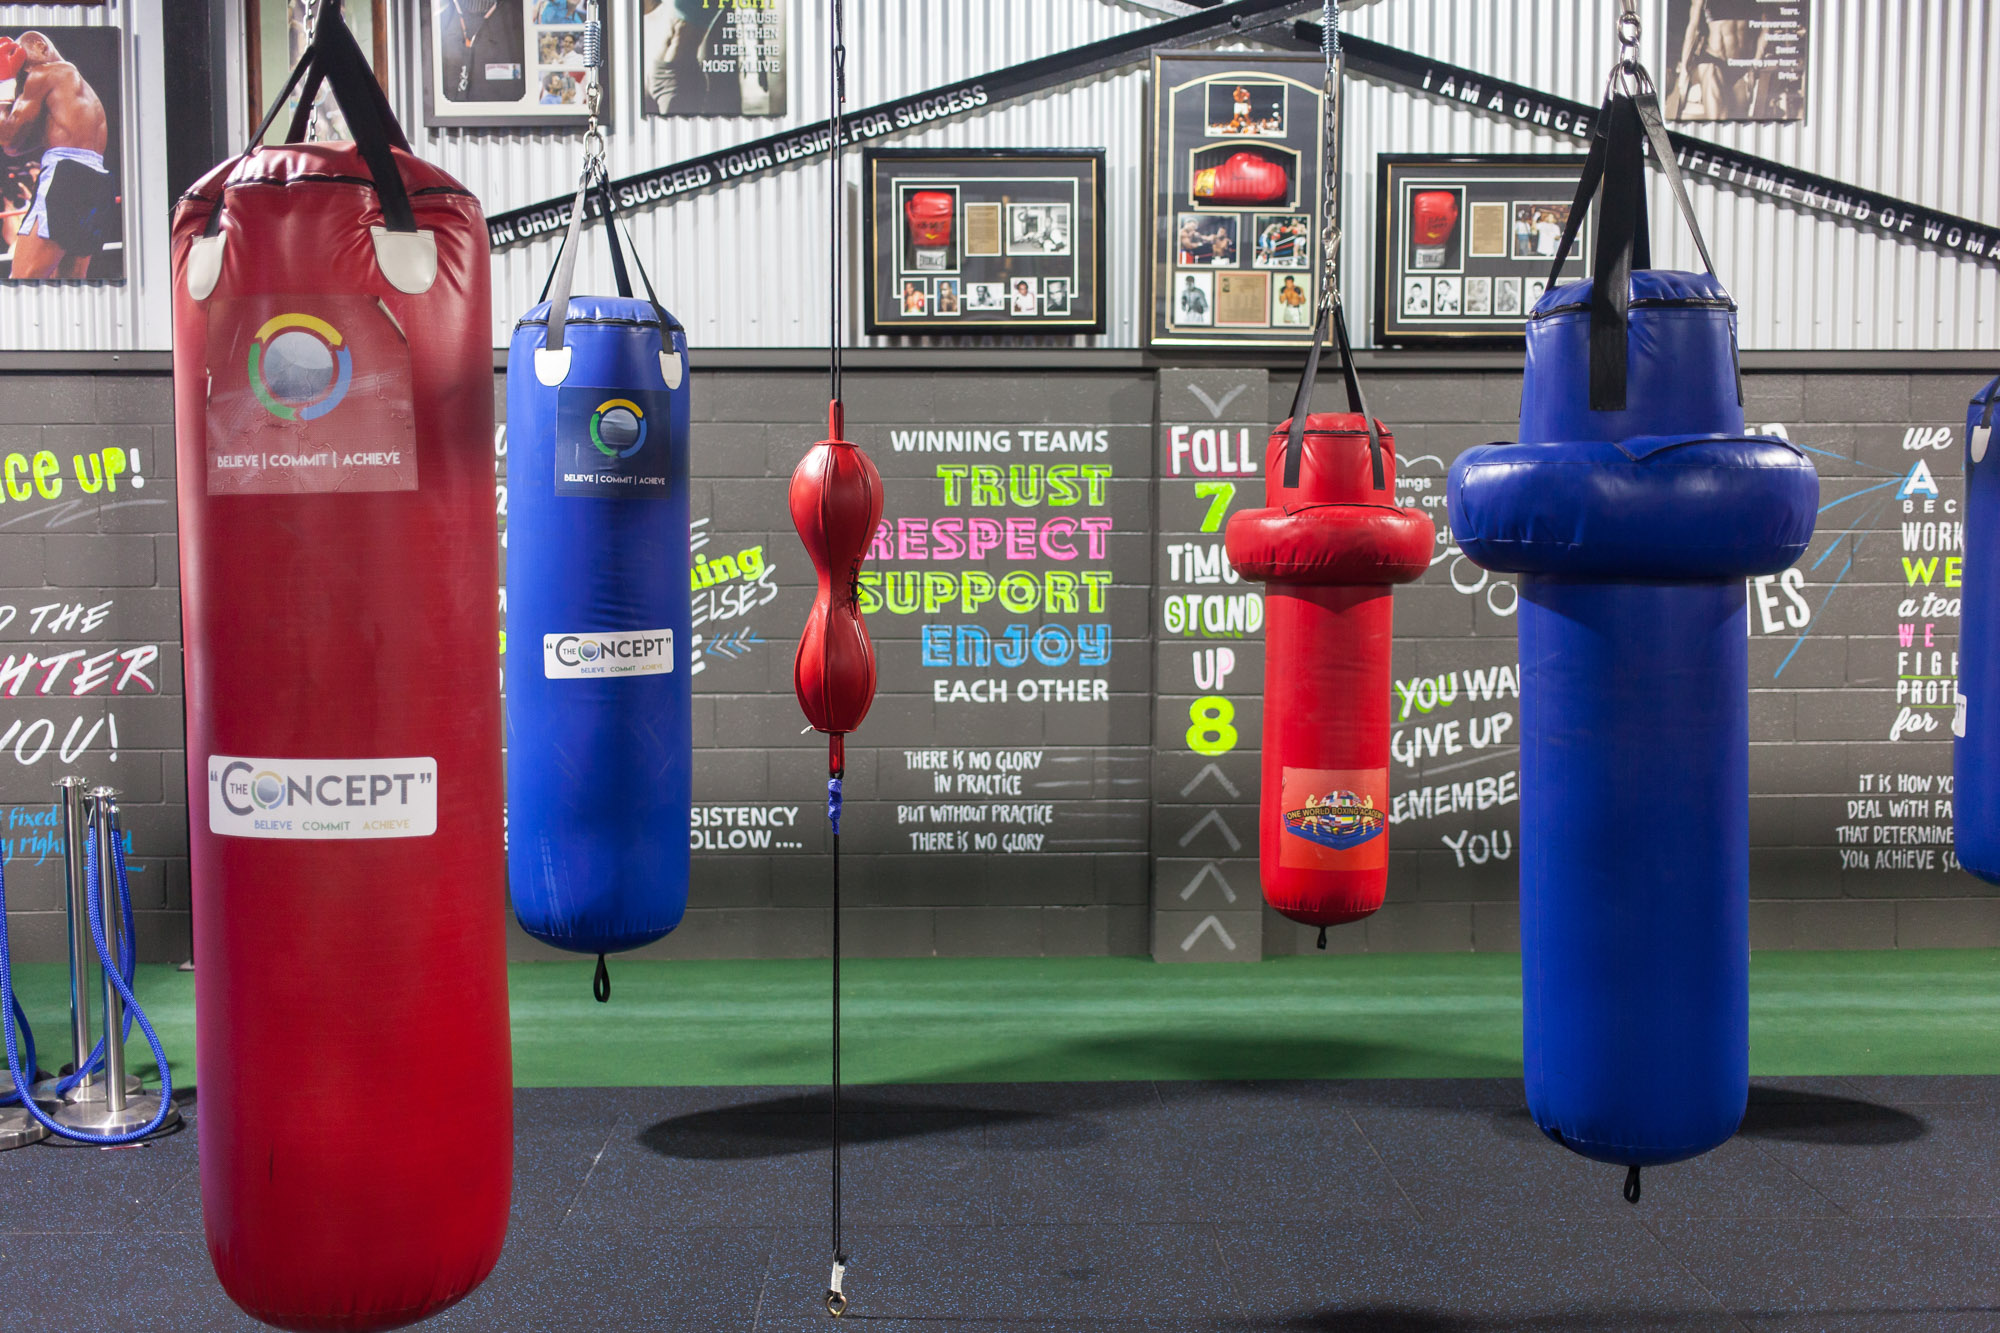 the-concept-highfields-boxing bags and hand painted signs.jpg